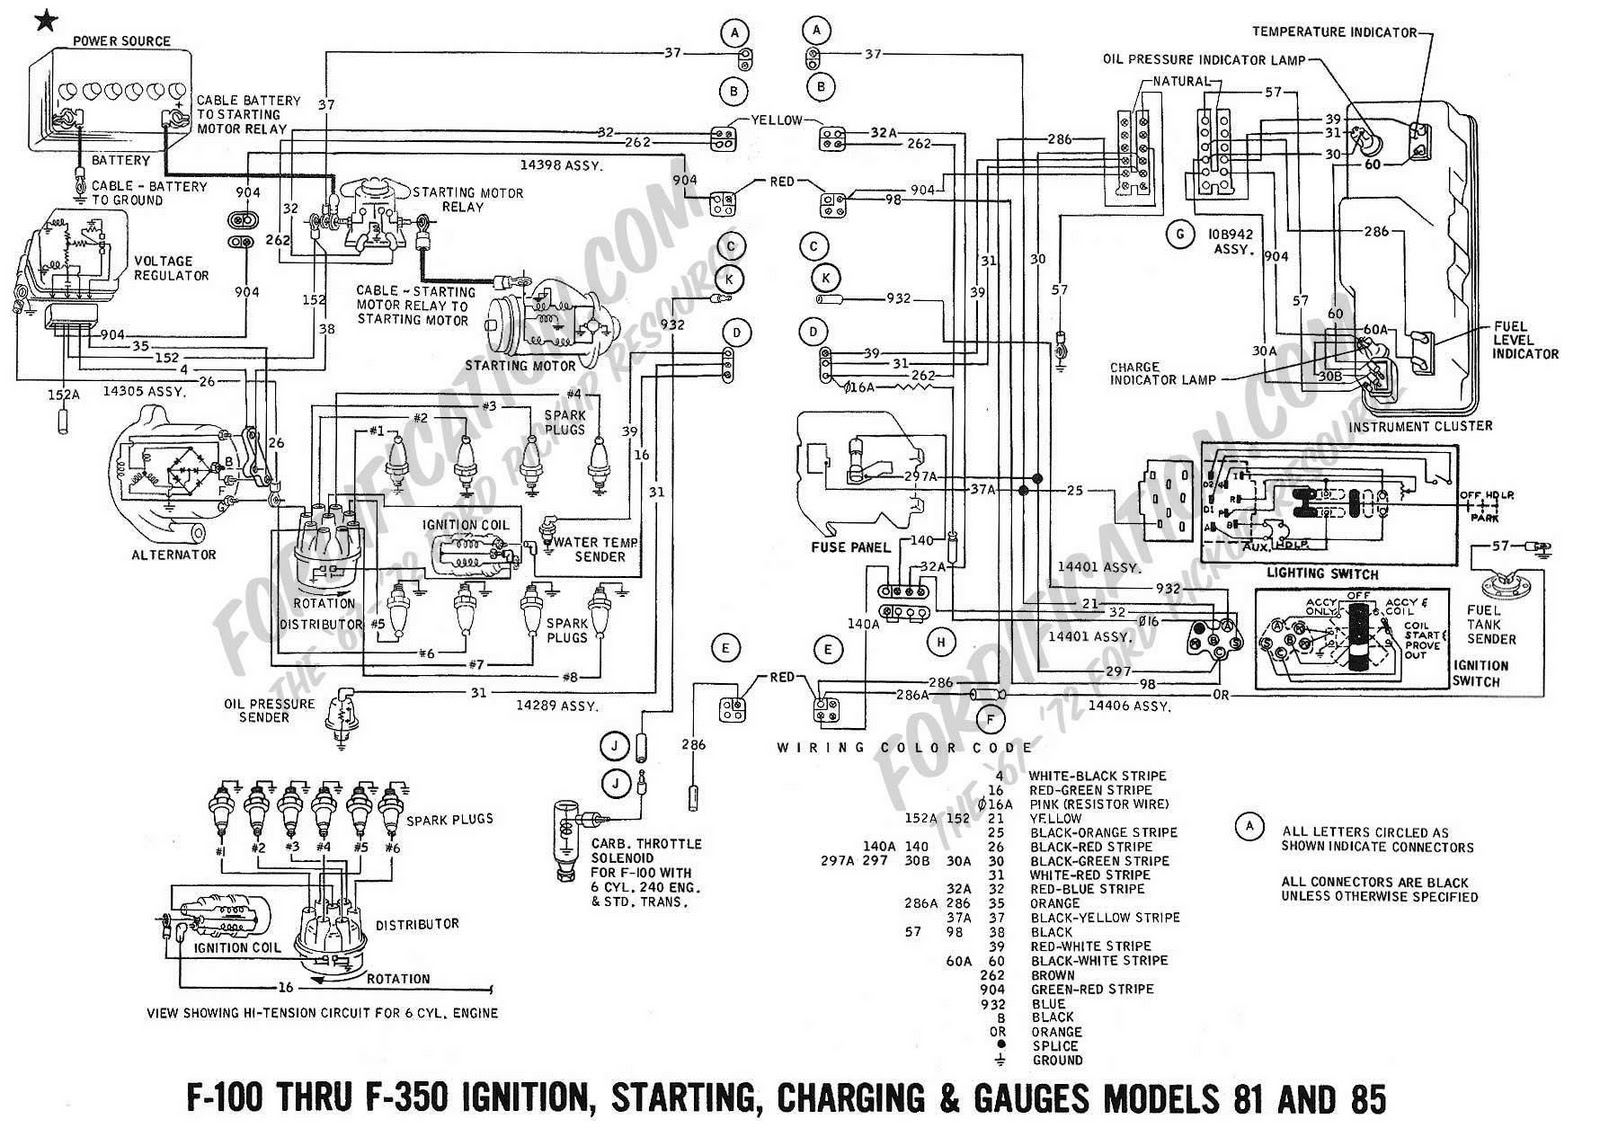 1981 Ford Truck Ignition Wiring Schematics Top Engine Fuse Diagram 2476 Smartlabs Dimmer Switch 1969 F150 Rh Thyl Co Uk